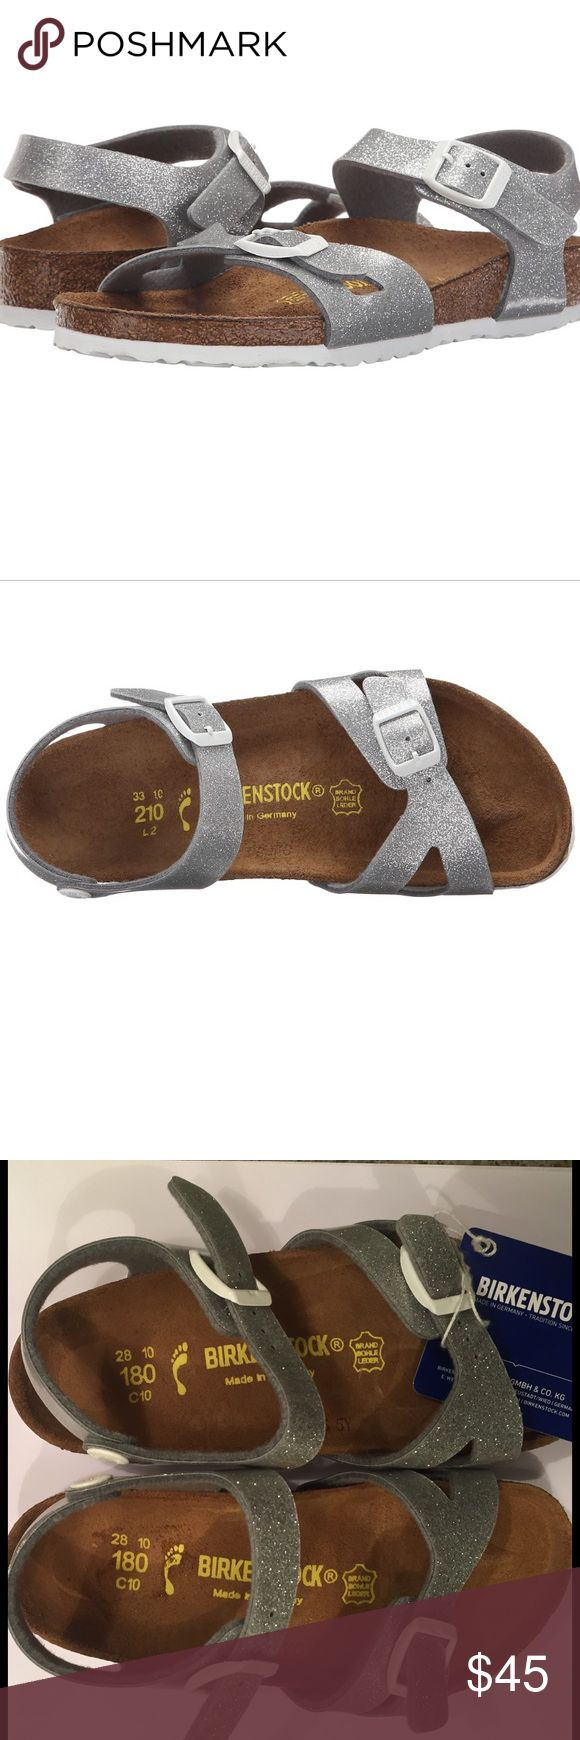 NEW! Toddler Infant Girls BIRKENSTOCK RIO Silver Brand new with tags!  BIRKENSTOCK Girls Infant & Toddler sized sandals.  RIO style in Magic Galaxy Silver.  Acrylic & polyamide uppers.  Two buckle.  Suede lined cork footbed.  EVA outsoul.  Super darling comfortable shoes! Birkenstock Shoes Sandals & Flip Flops